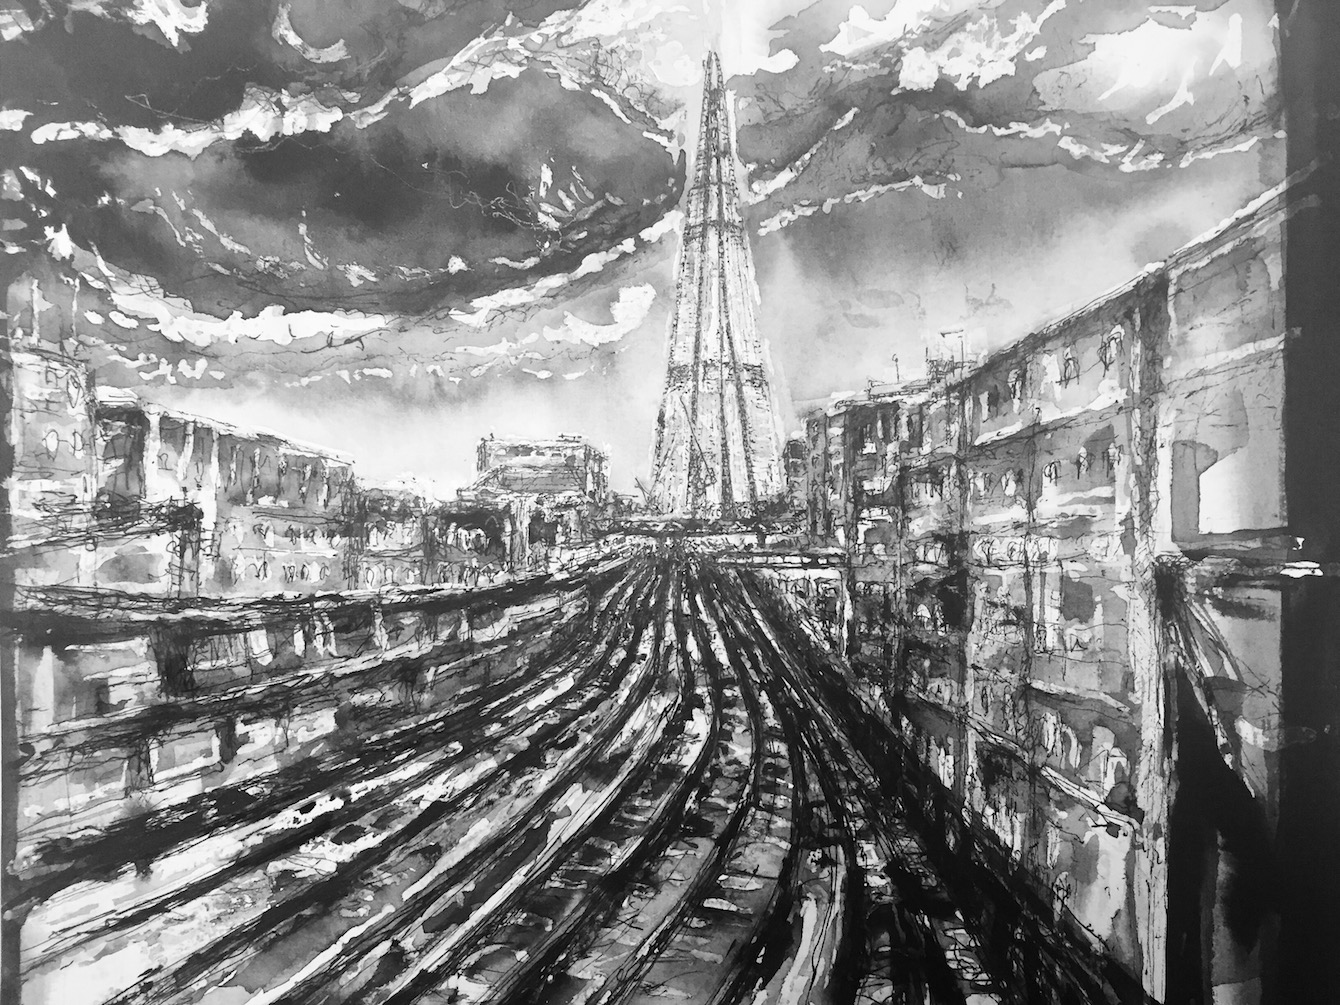 Title: Track V - A Heart of Glass - London Shard Size: 30 x 36 cm Medium: ink and pencil on watercolour paper